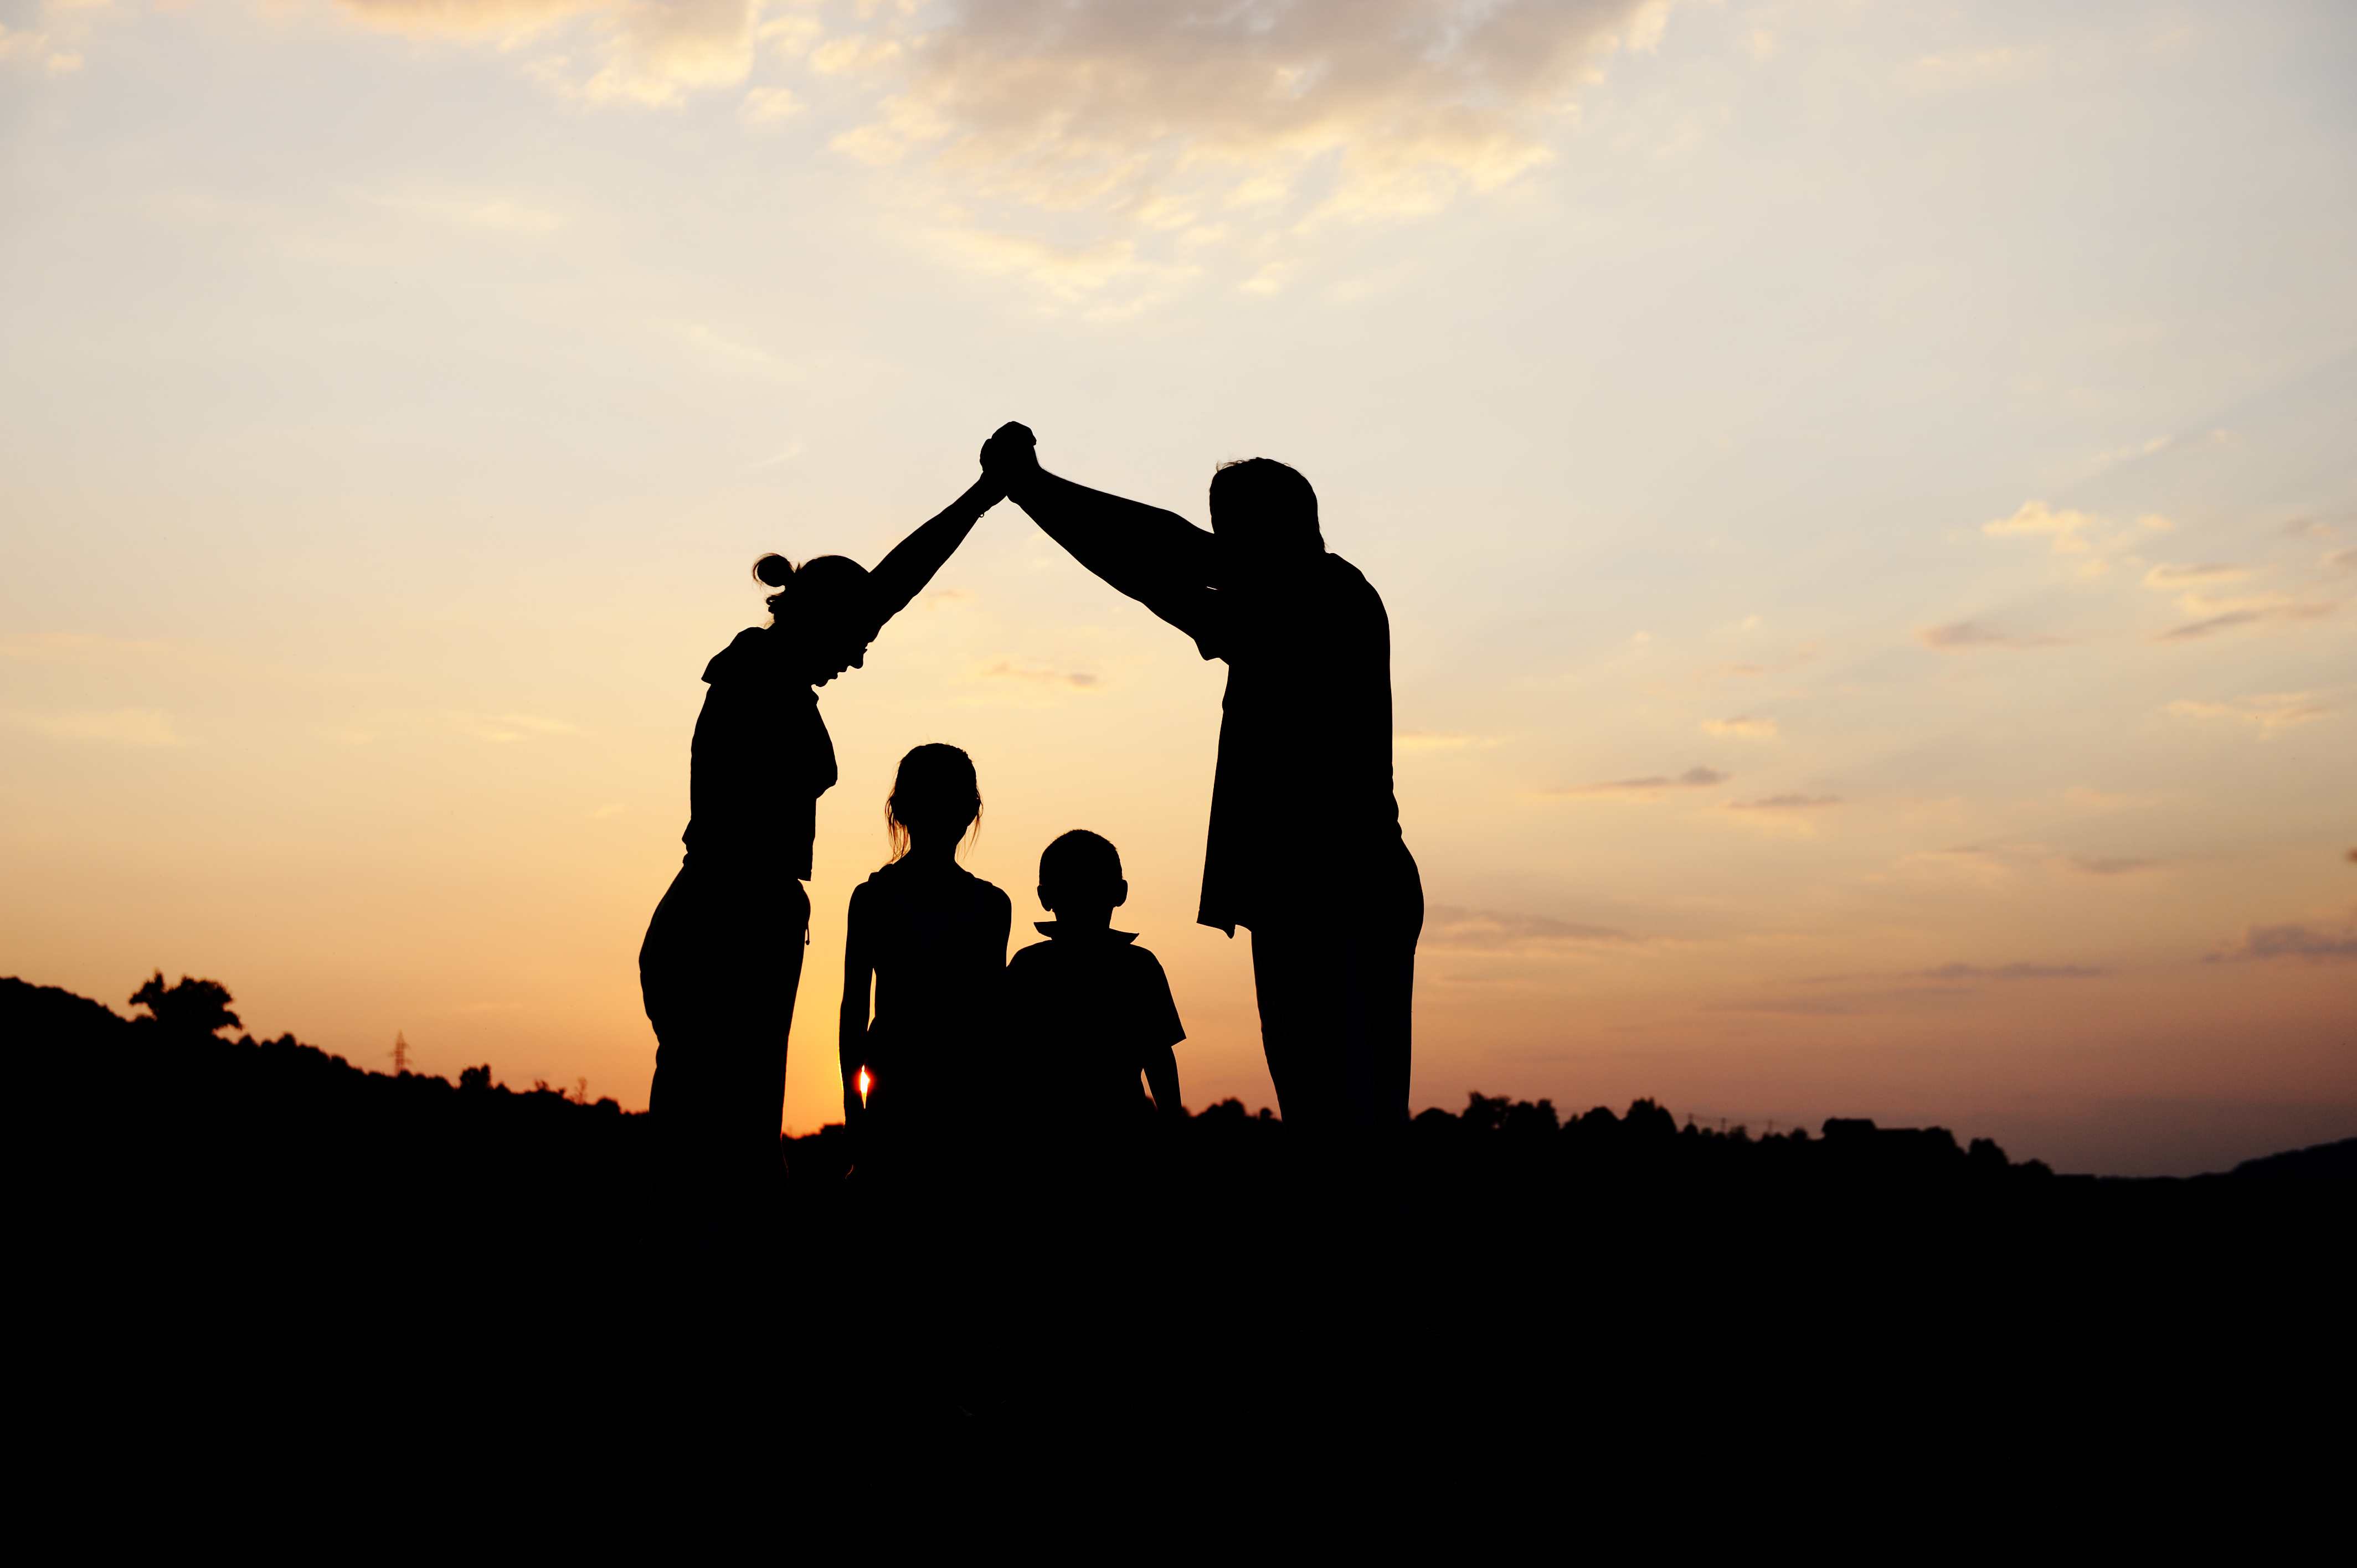 stockfresh_1218734_silhouette-group-of-happy-children-playing-on-meadow-sunset-summertime_sizeXL_55d